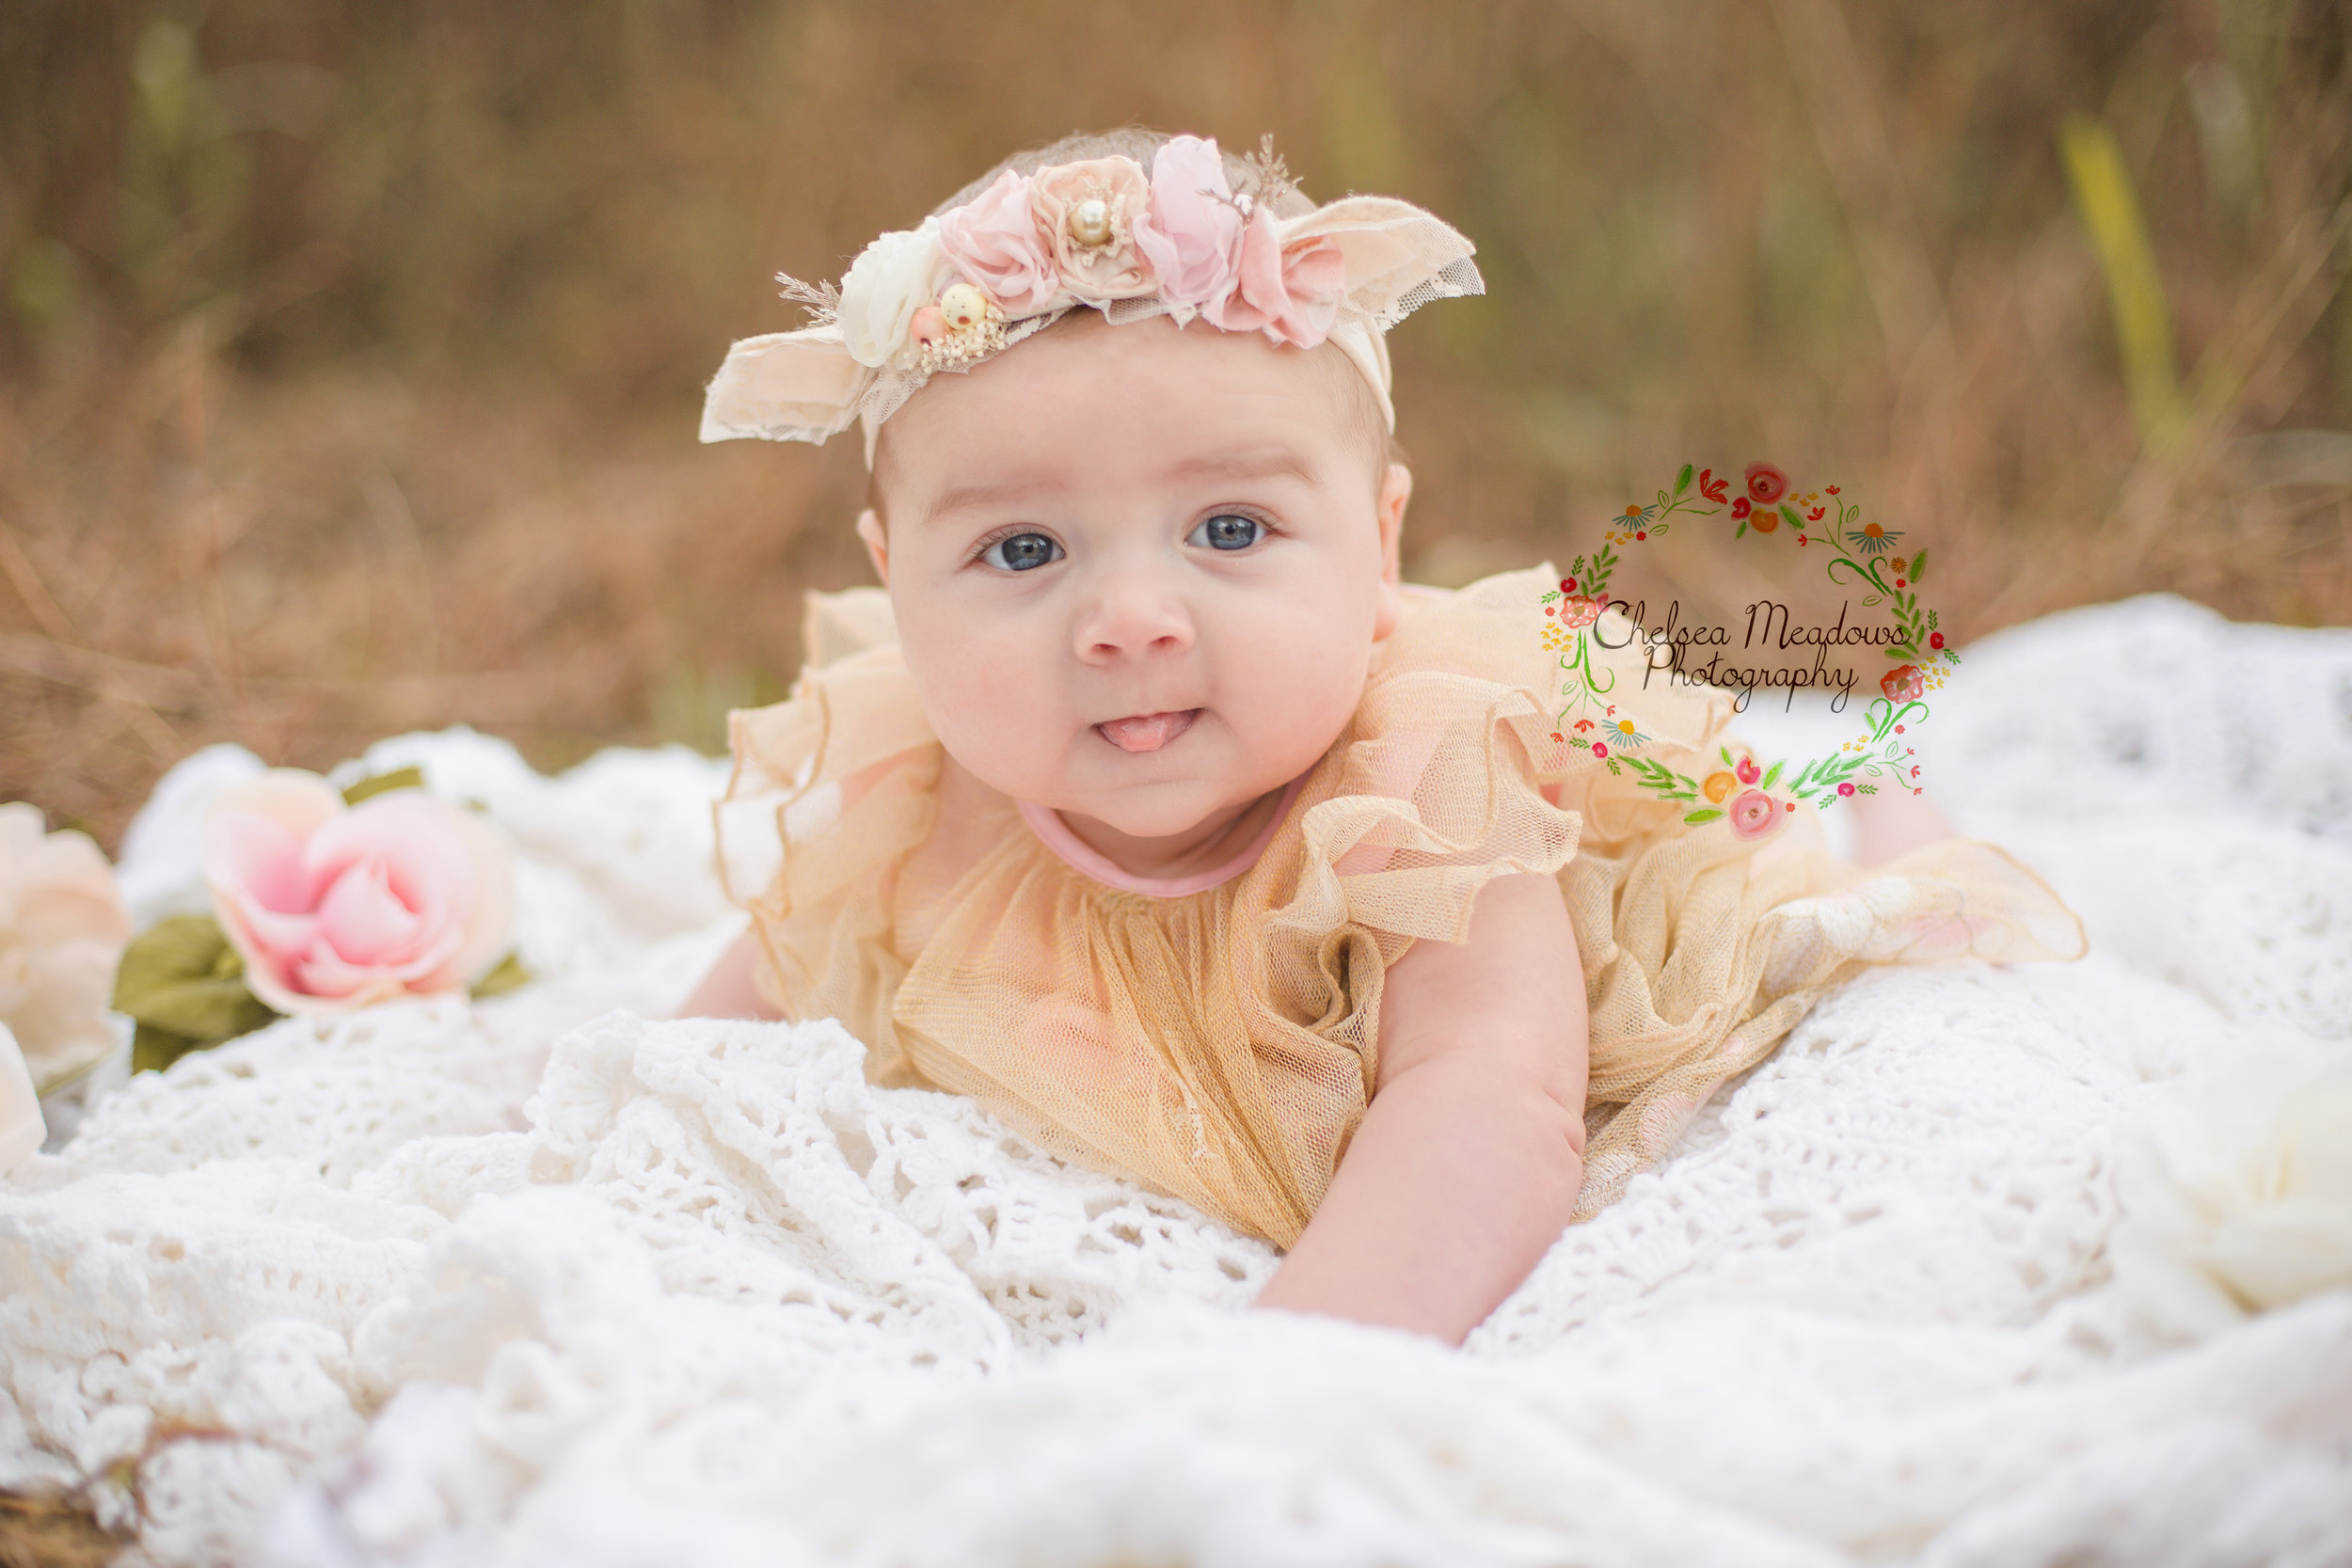 Ava's 2 Month Session - Chelsea Meadows Photography (43)_edited-1.jpg